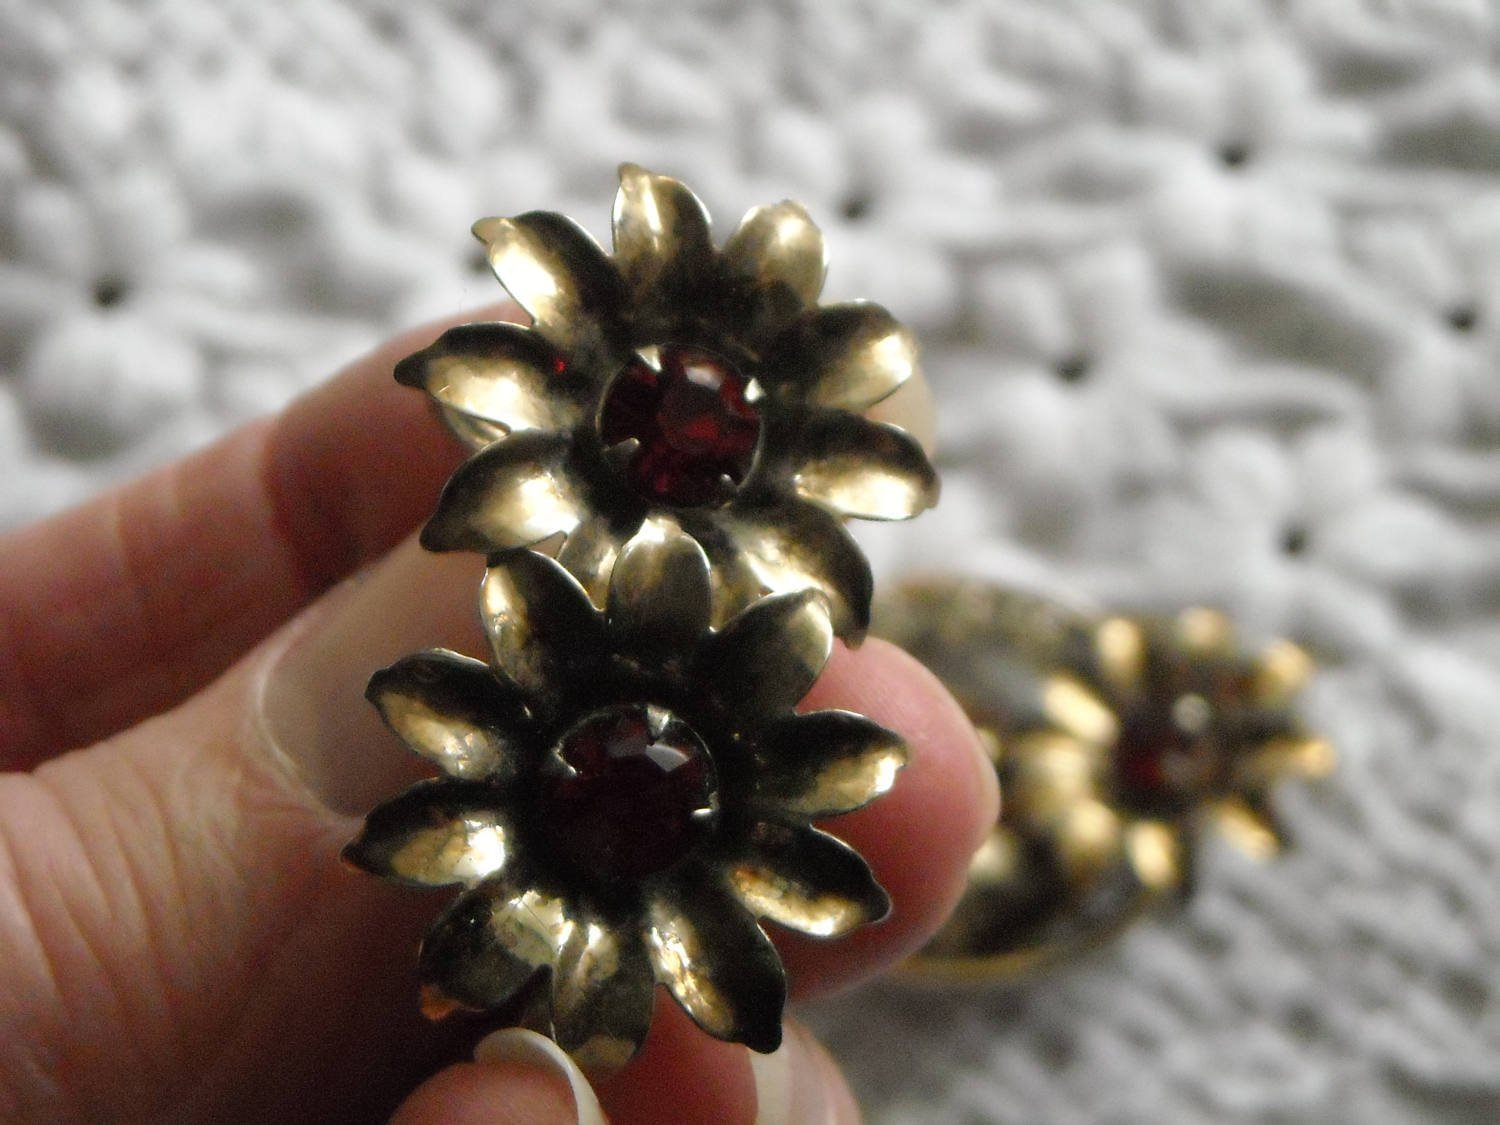 Vintage Gold Tone Flower Pendant Brooch & Matching Earrings Red & White Sets image 3